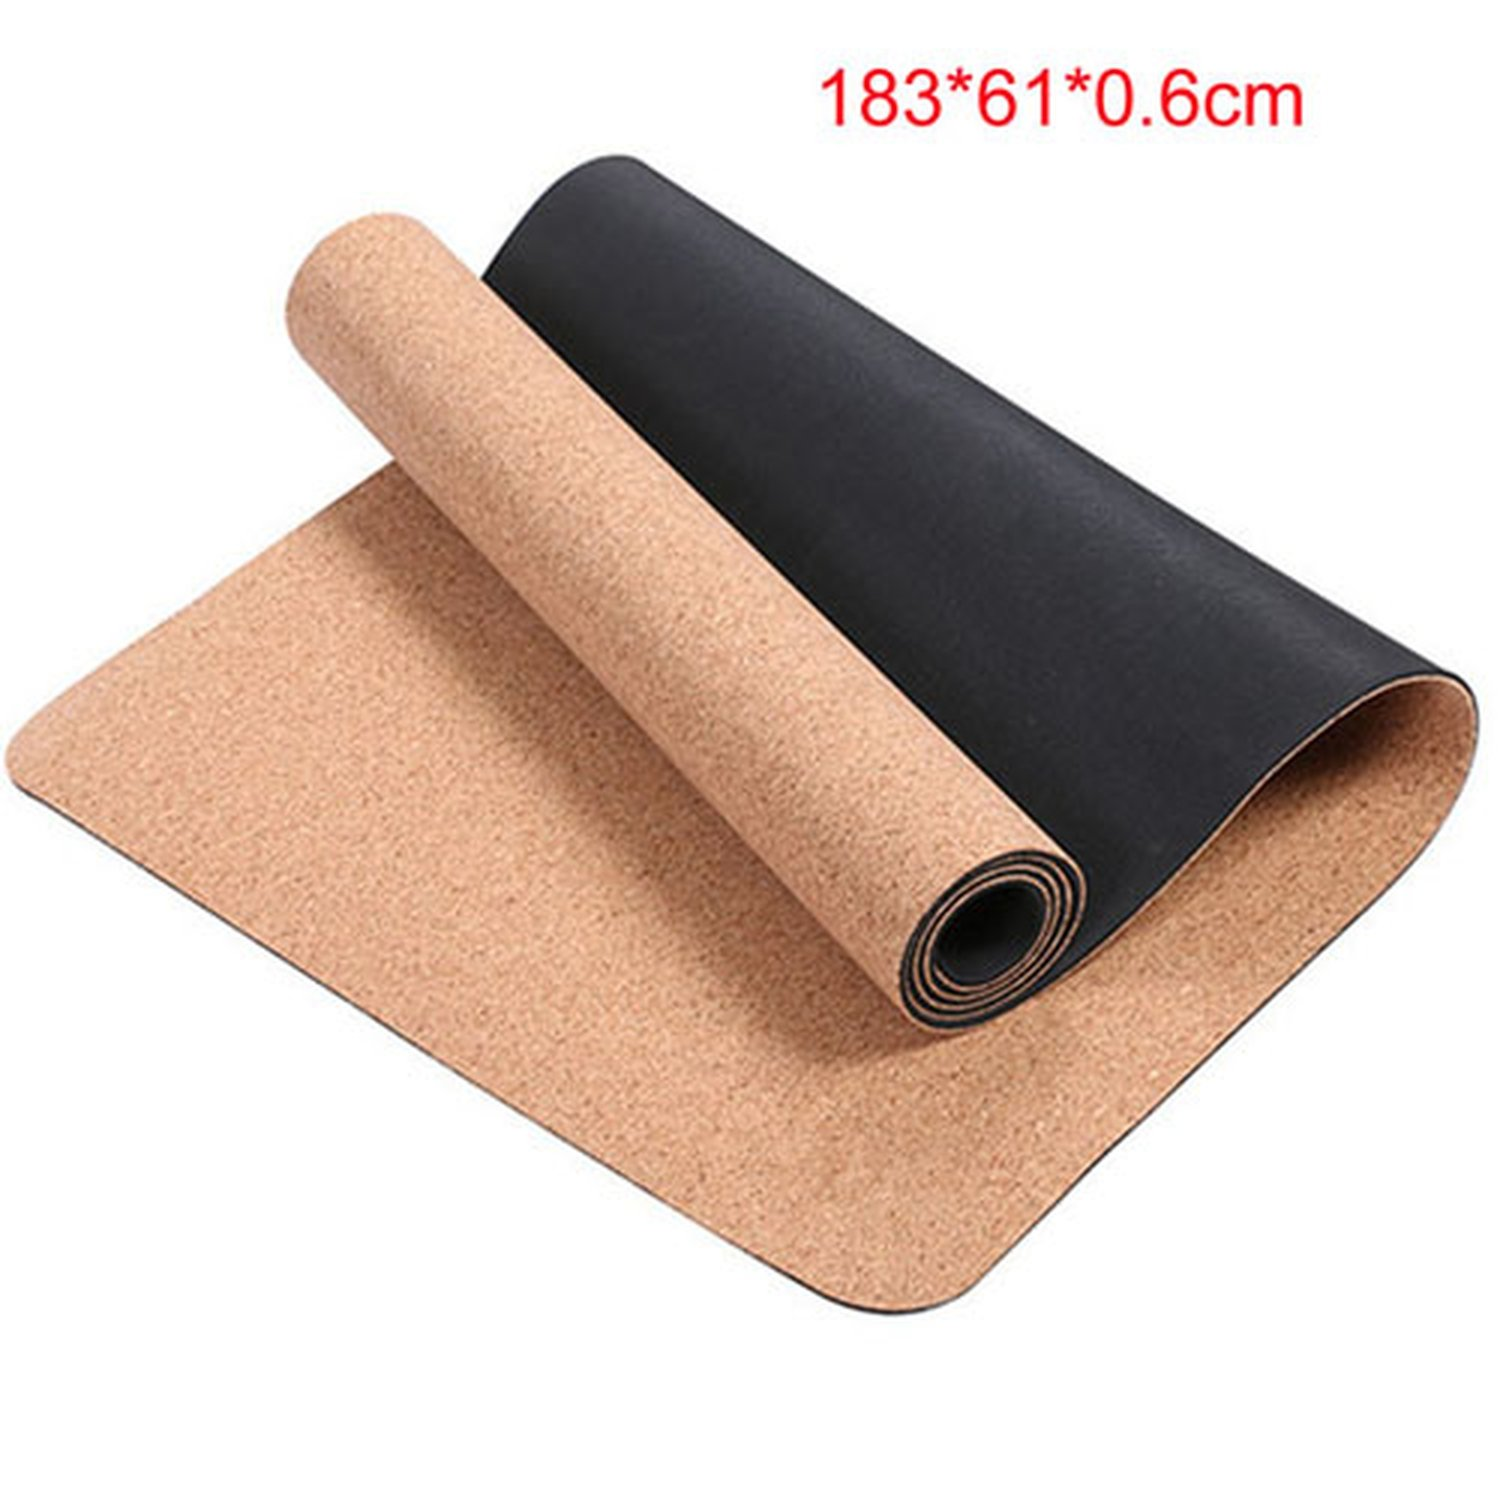 Amazon.com : Chiced TPE Yoga Mat Eco-Friendly Non Slip ...